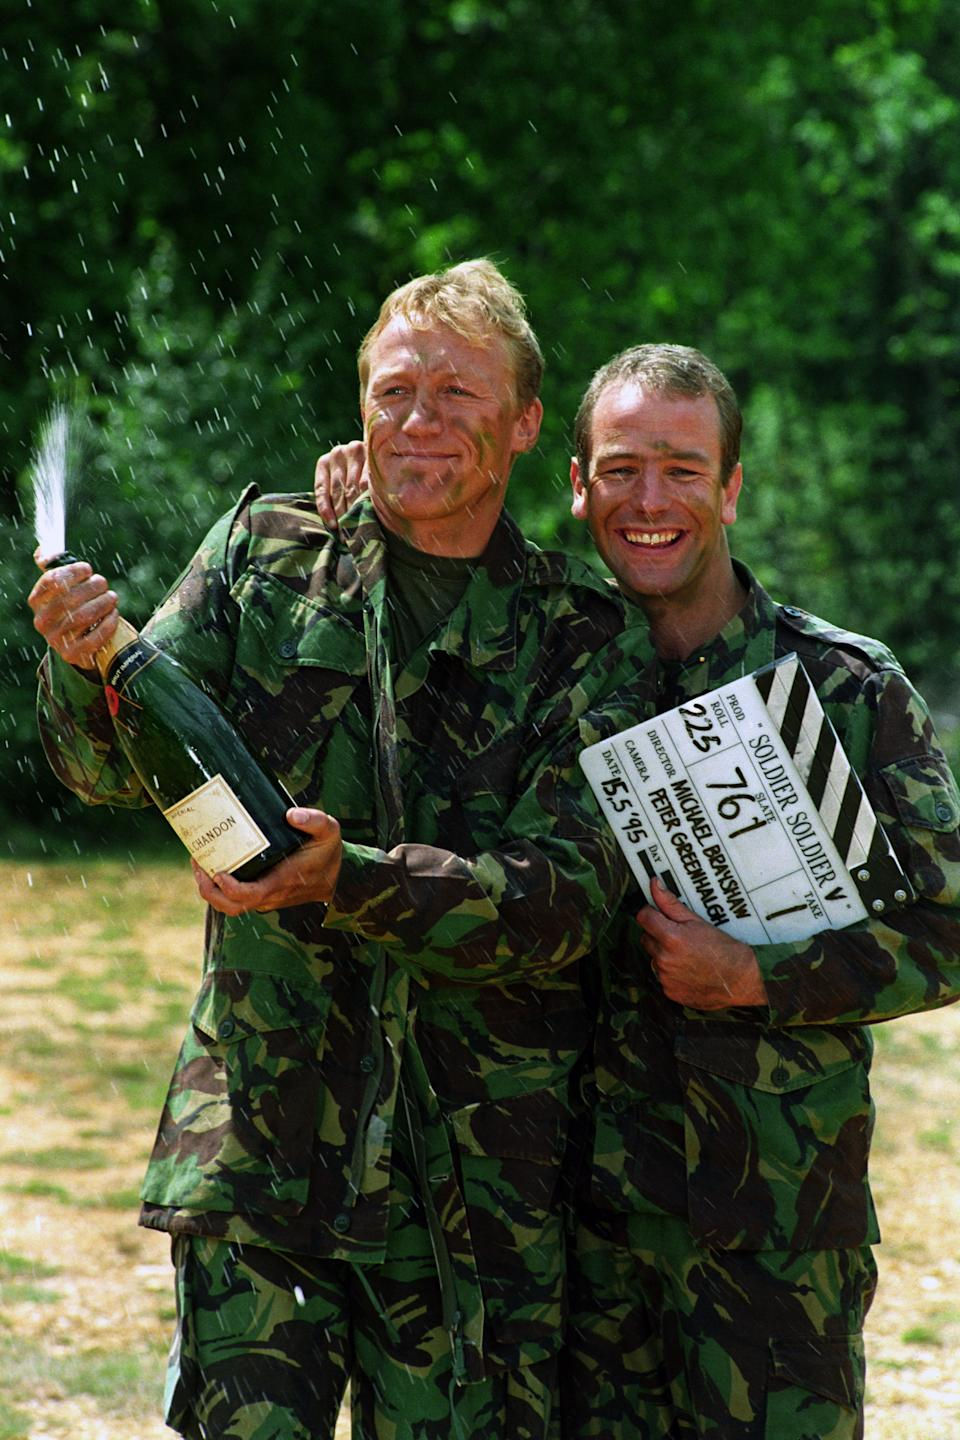 JEROME FLYNN AND ROBSON GREEN, ON RIGHT, CELEBRATING THEIR NO 1 HIT RECORD, UNCHAINED MELODY, TAKEN FROM THE ITV PROGRAMME SOLDIER SOLDIER.   (Photo by Tim Ockenden - PA Images/PA Images via Getty Images)